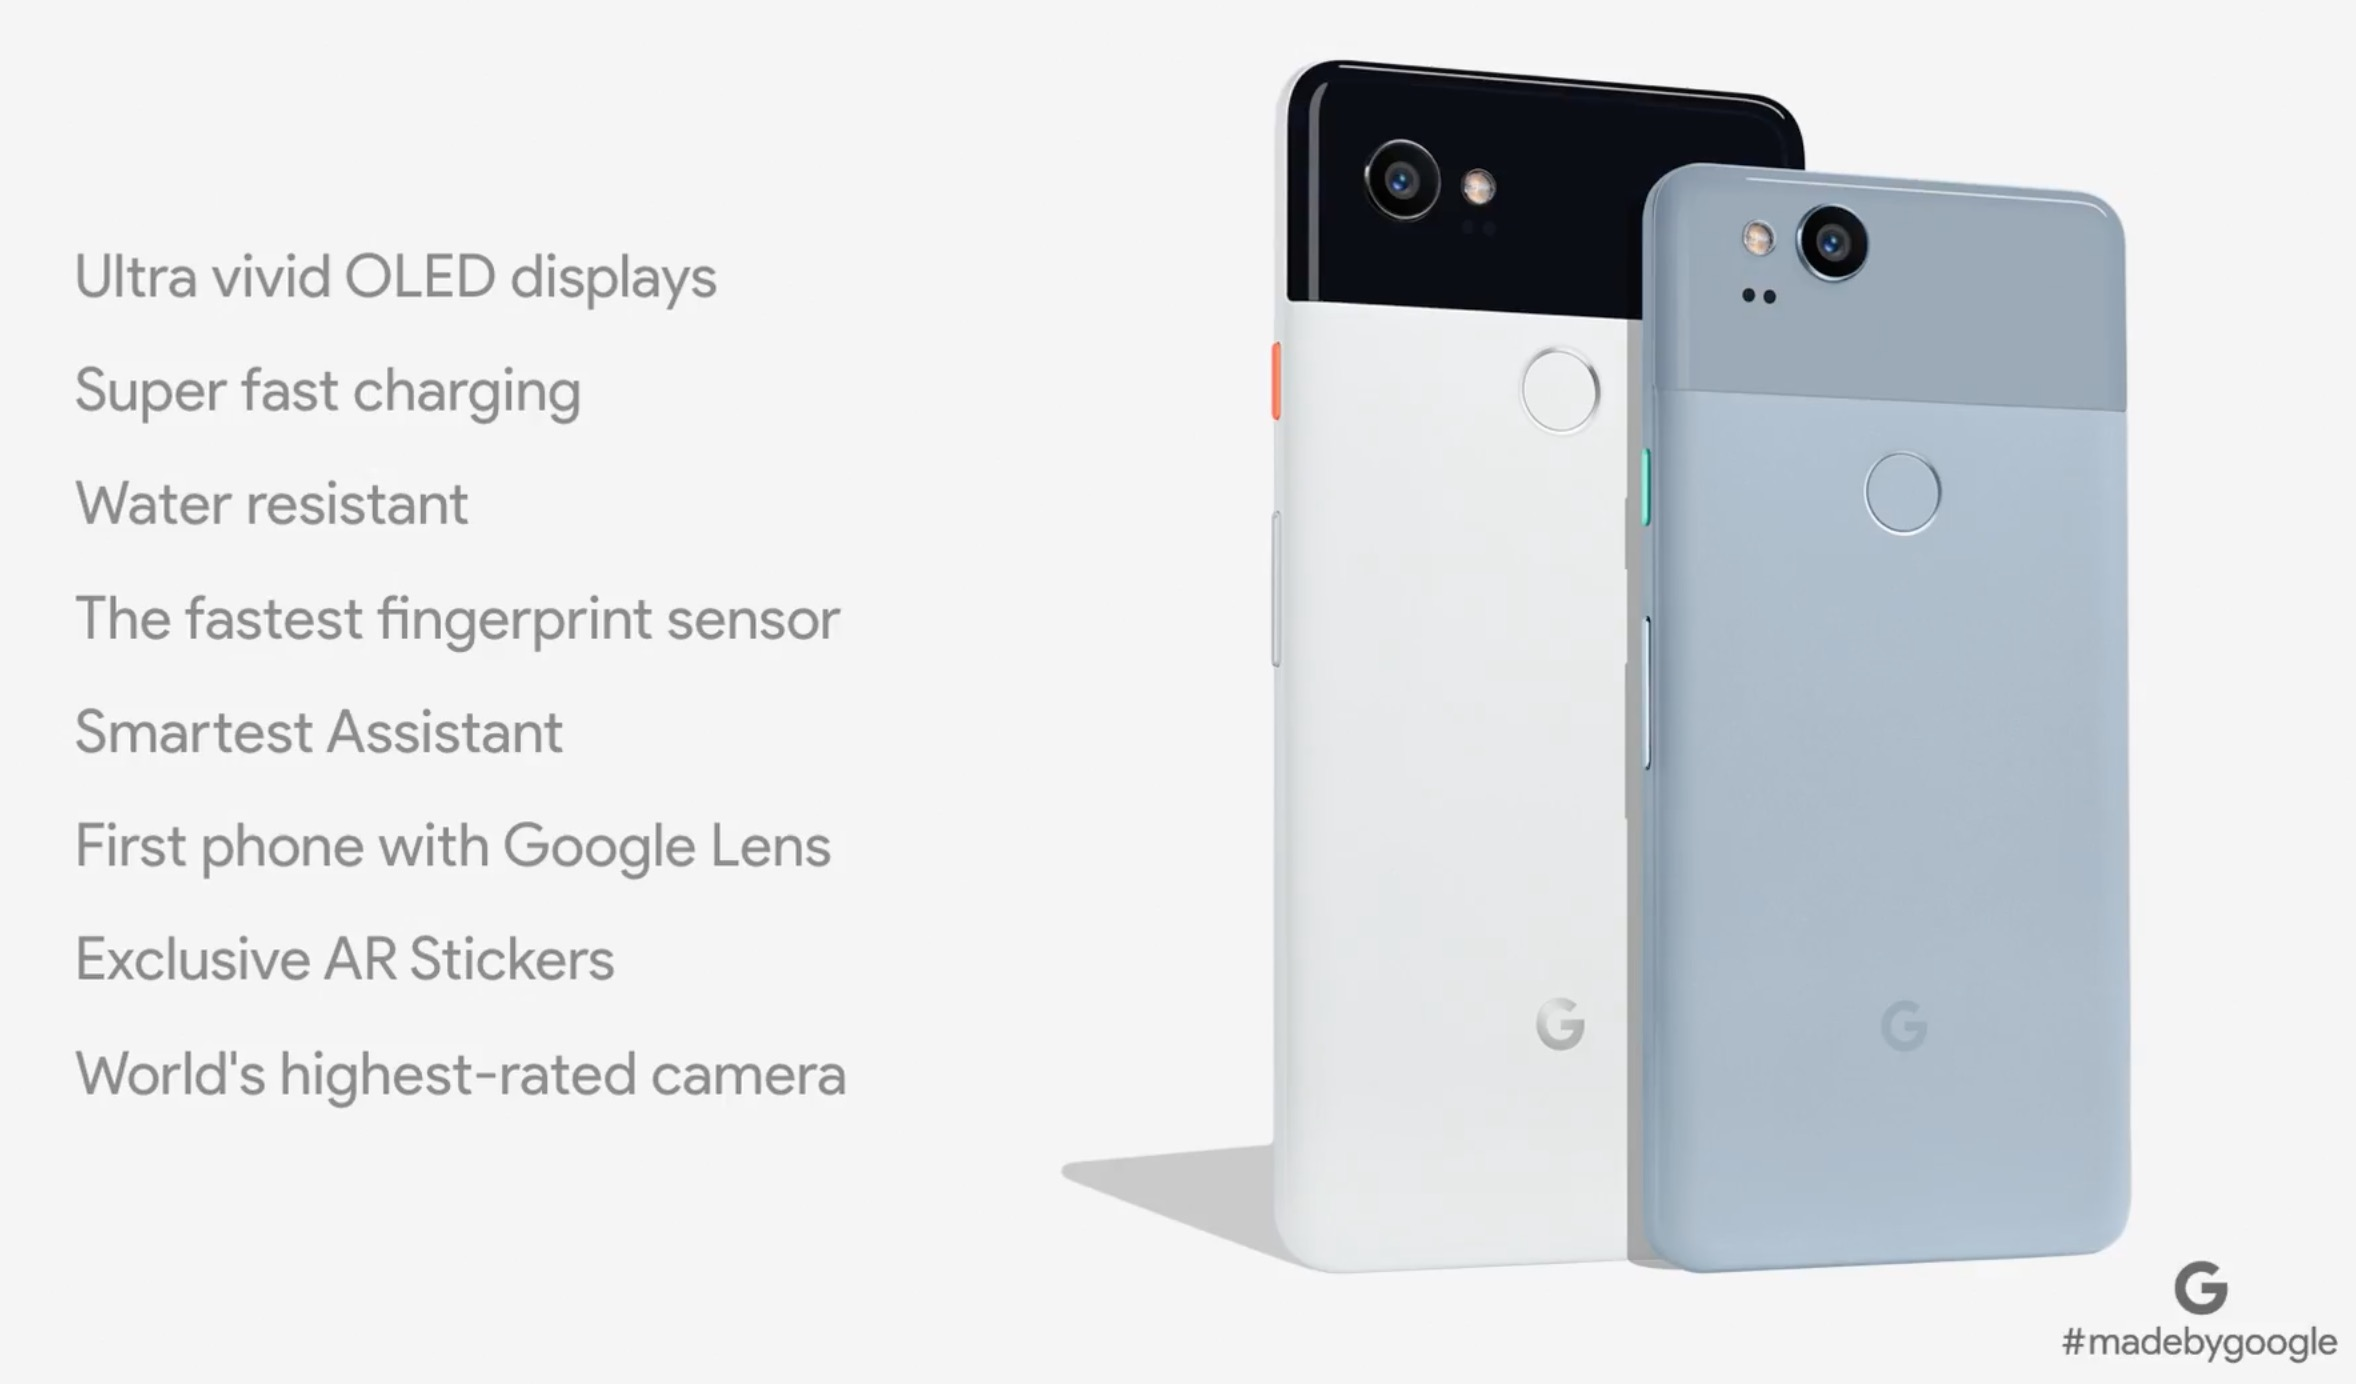 Google Pixel 2 and Pixel XL Smartphones are Android Flagships (2017)